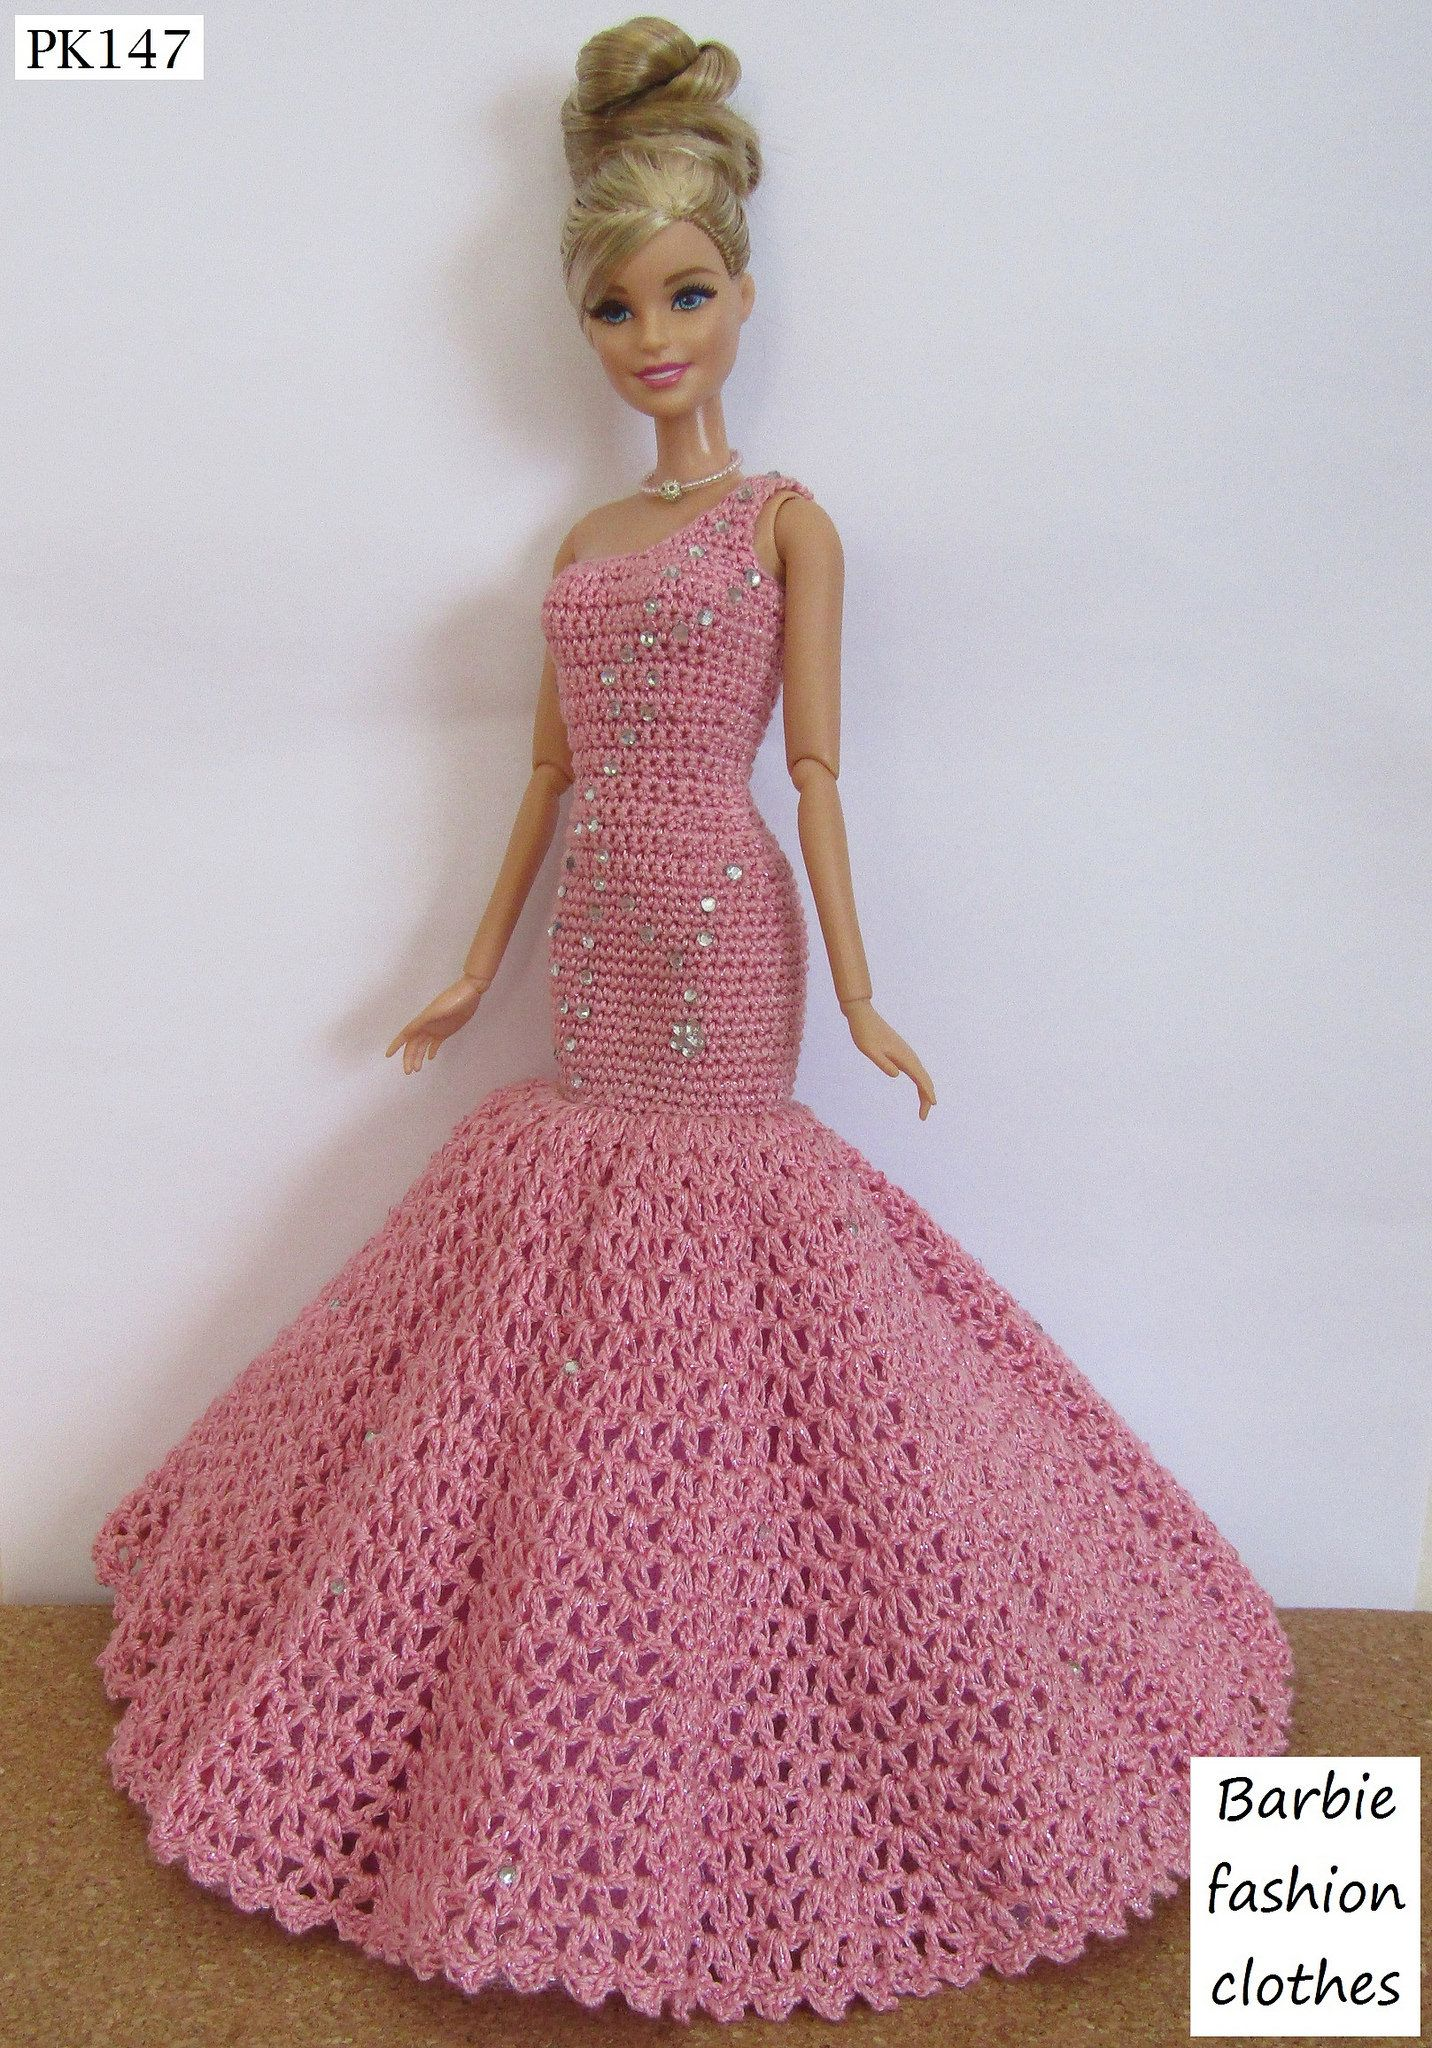 https://flic.kr/p/SF4Zoj | PK147 | häkeln | Pinterest | Barbie ...